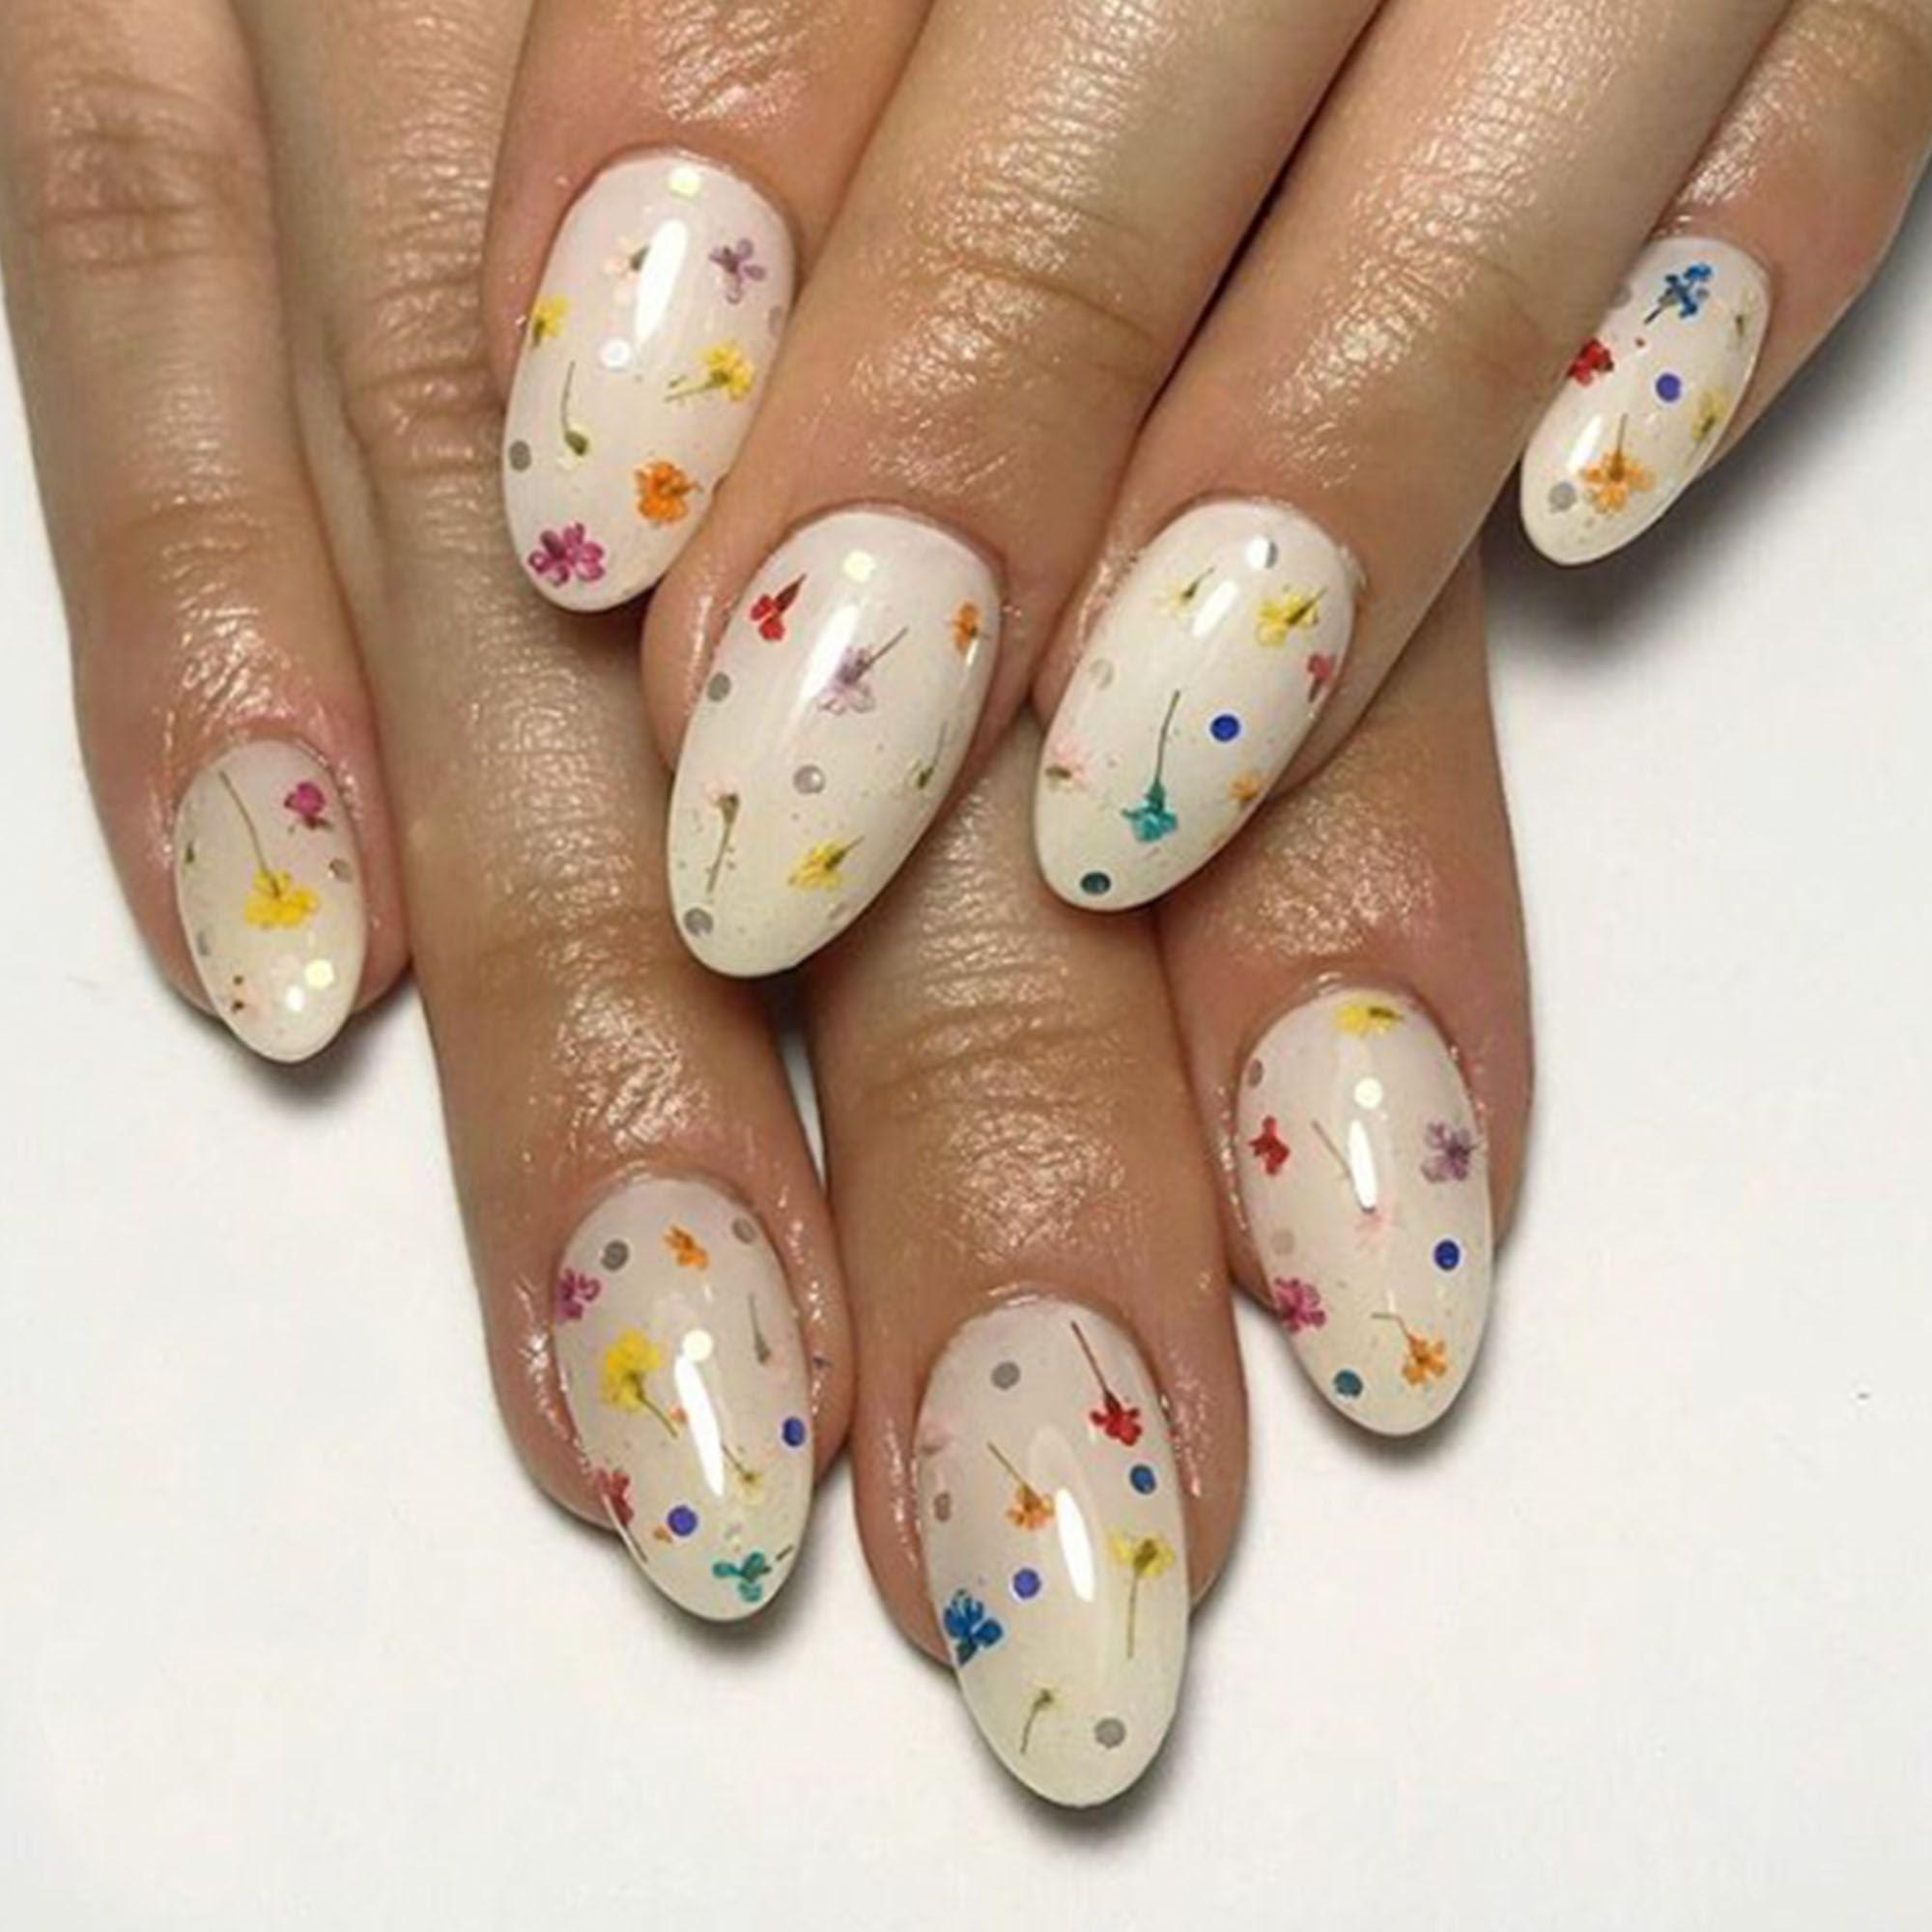 11 Fun Spring Floral Nail Designs The Best Flower Designs For Your Nails